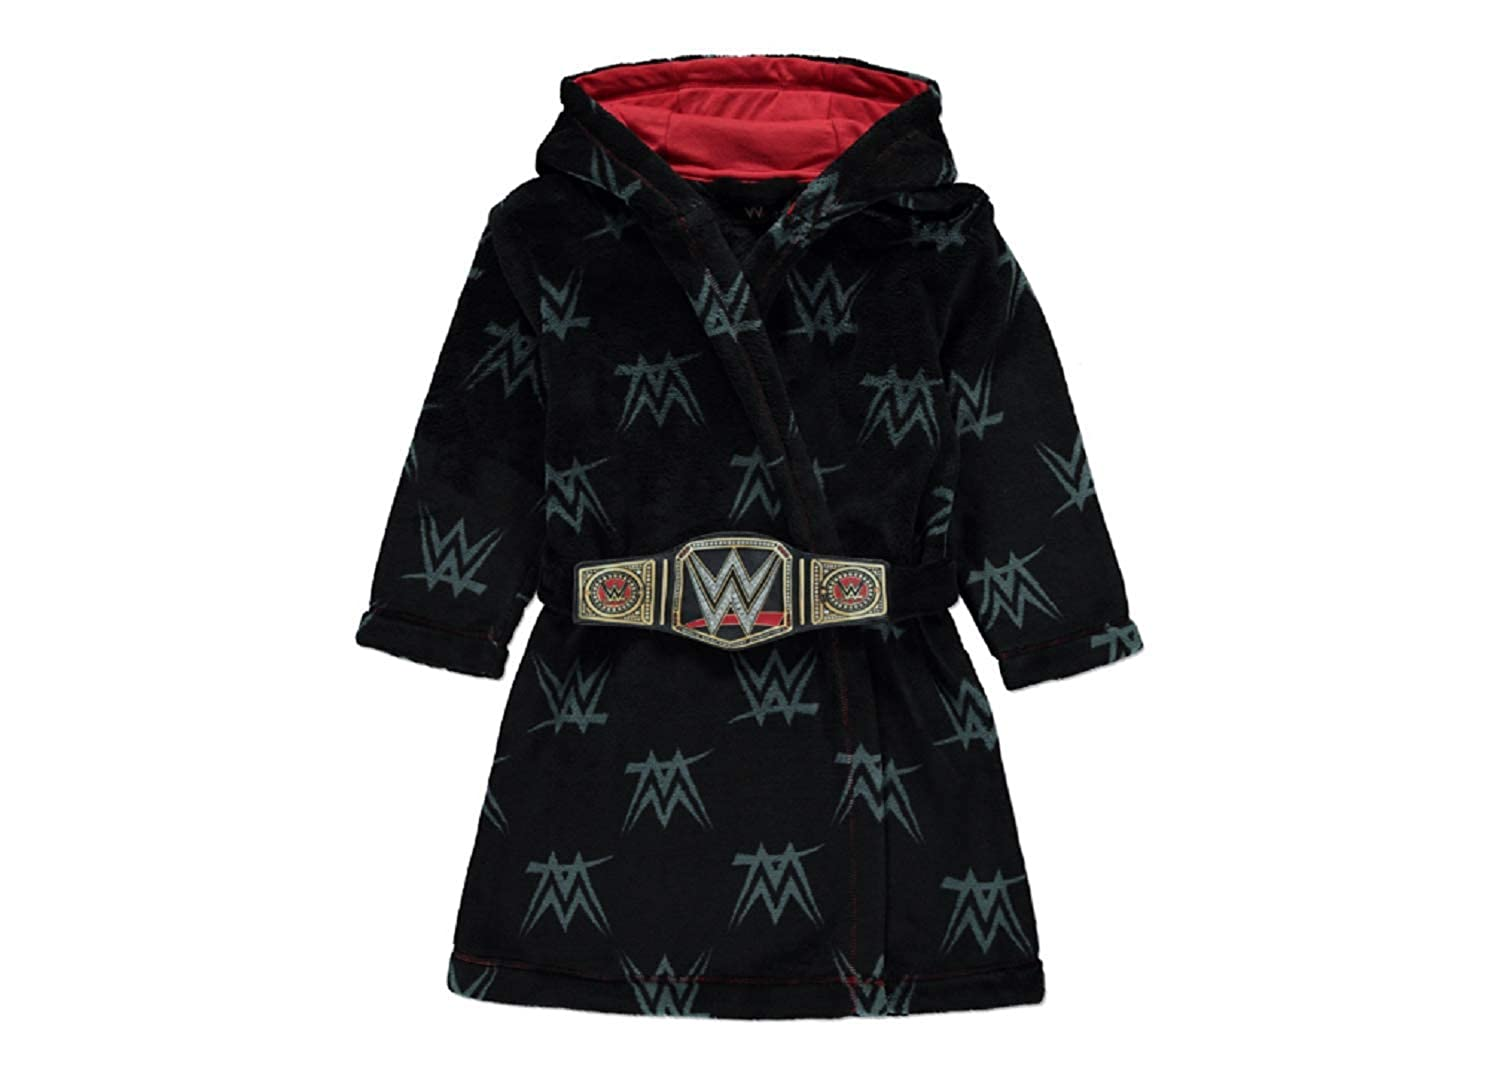 WWE Dressing Gown